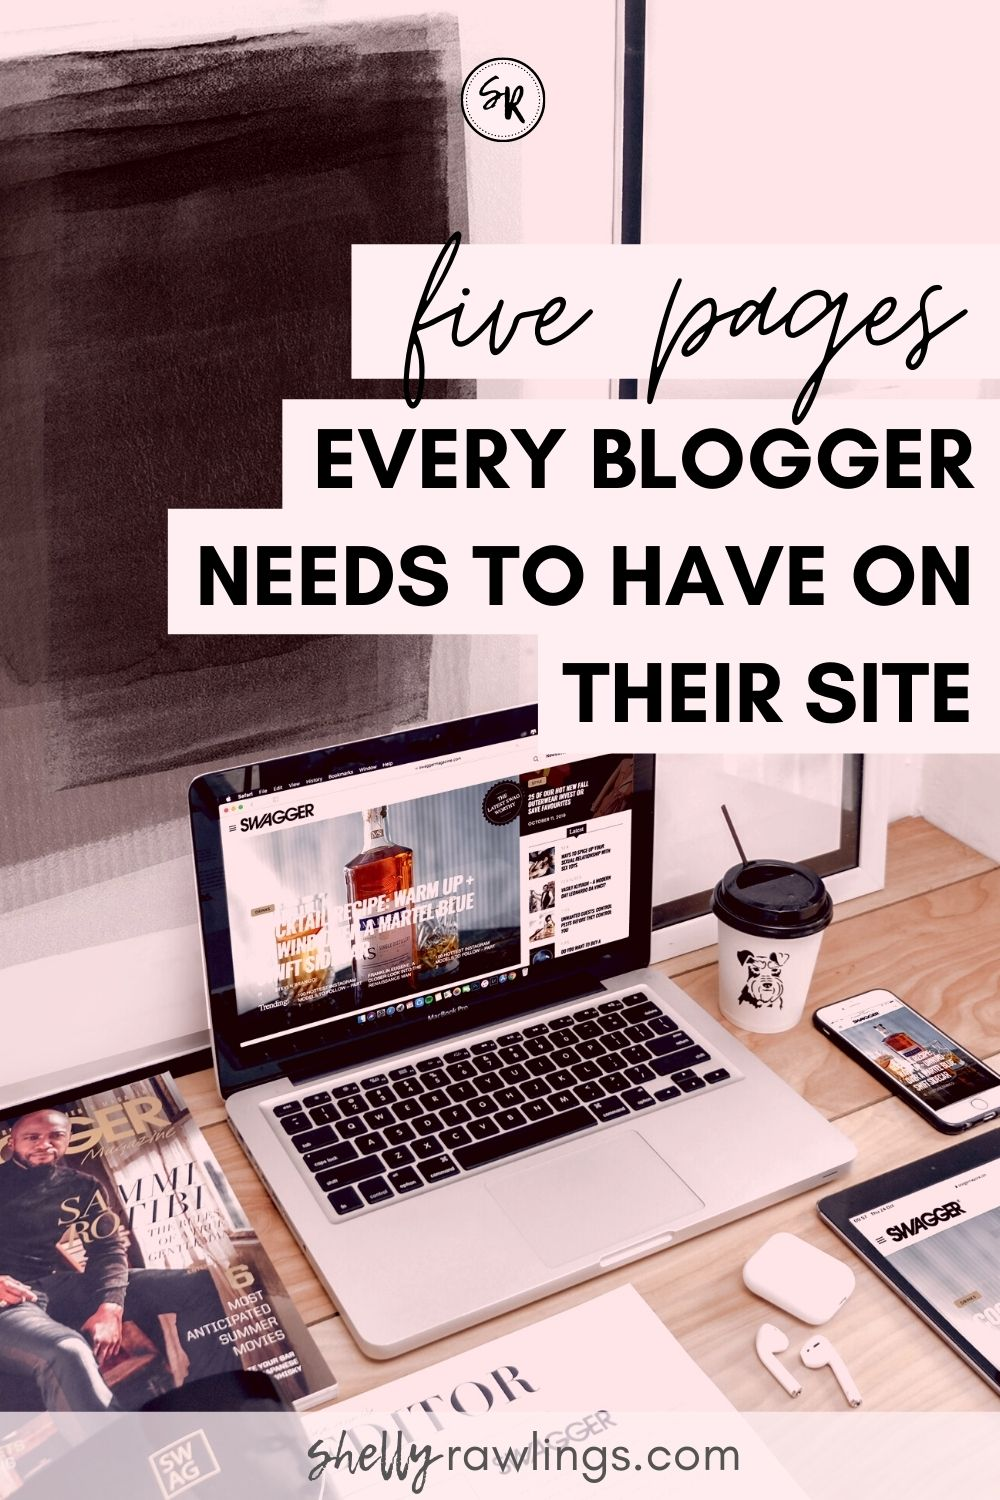 5 Pages You Need to Have On Your Blog | Pages Every Blogger Really Needs on Their Site